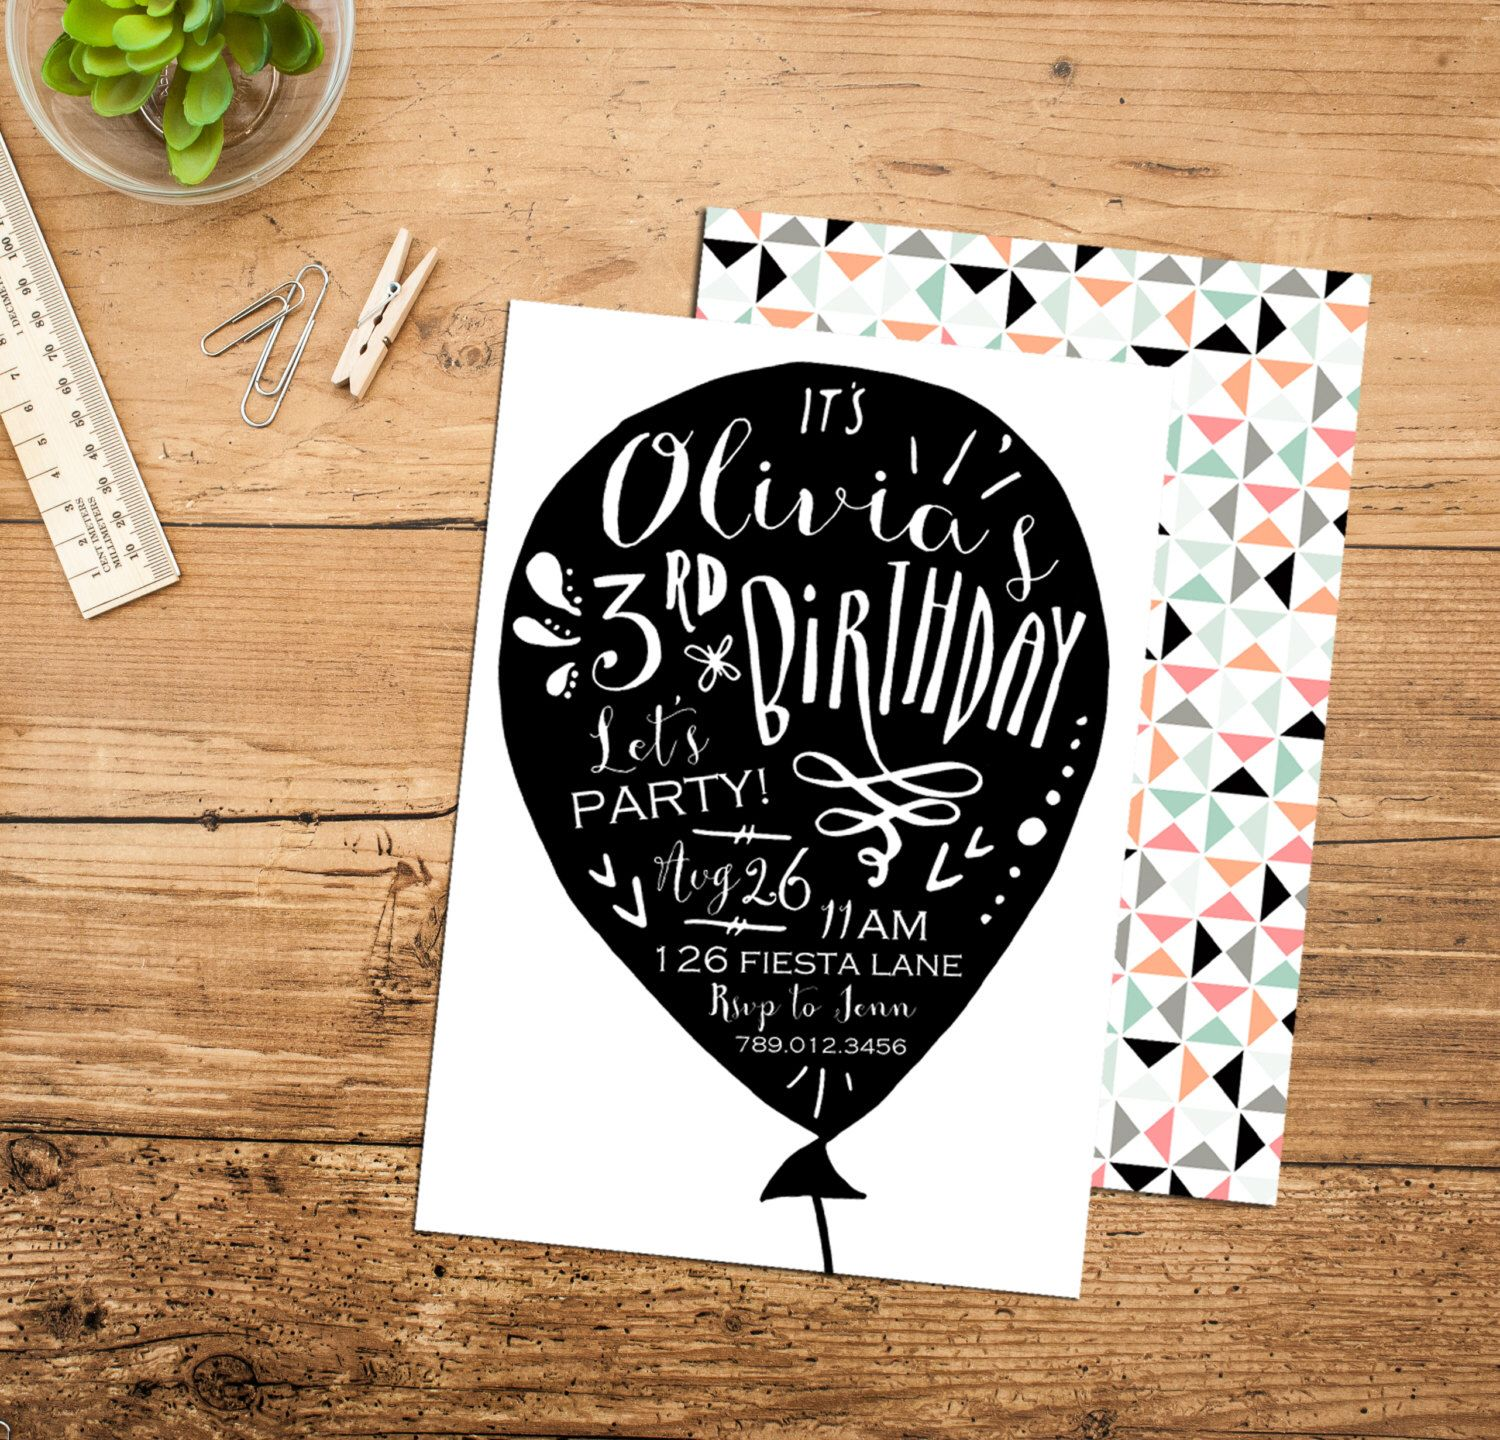 Balloon Black White Birthday Party Invitation Printable - Black and white 30th birthday party invitations